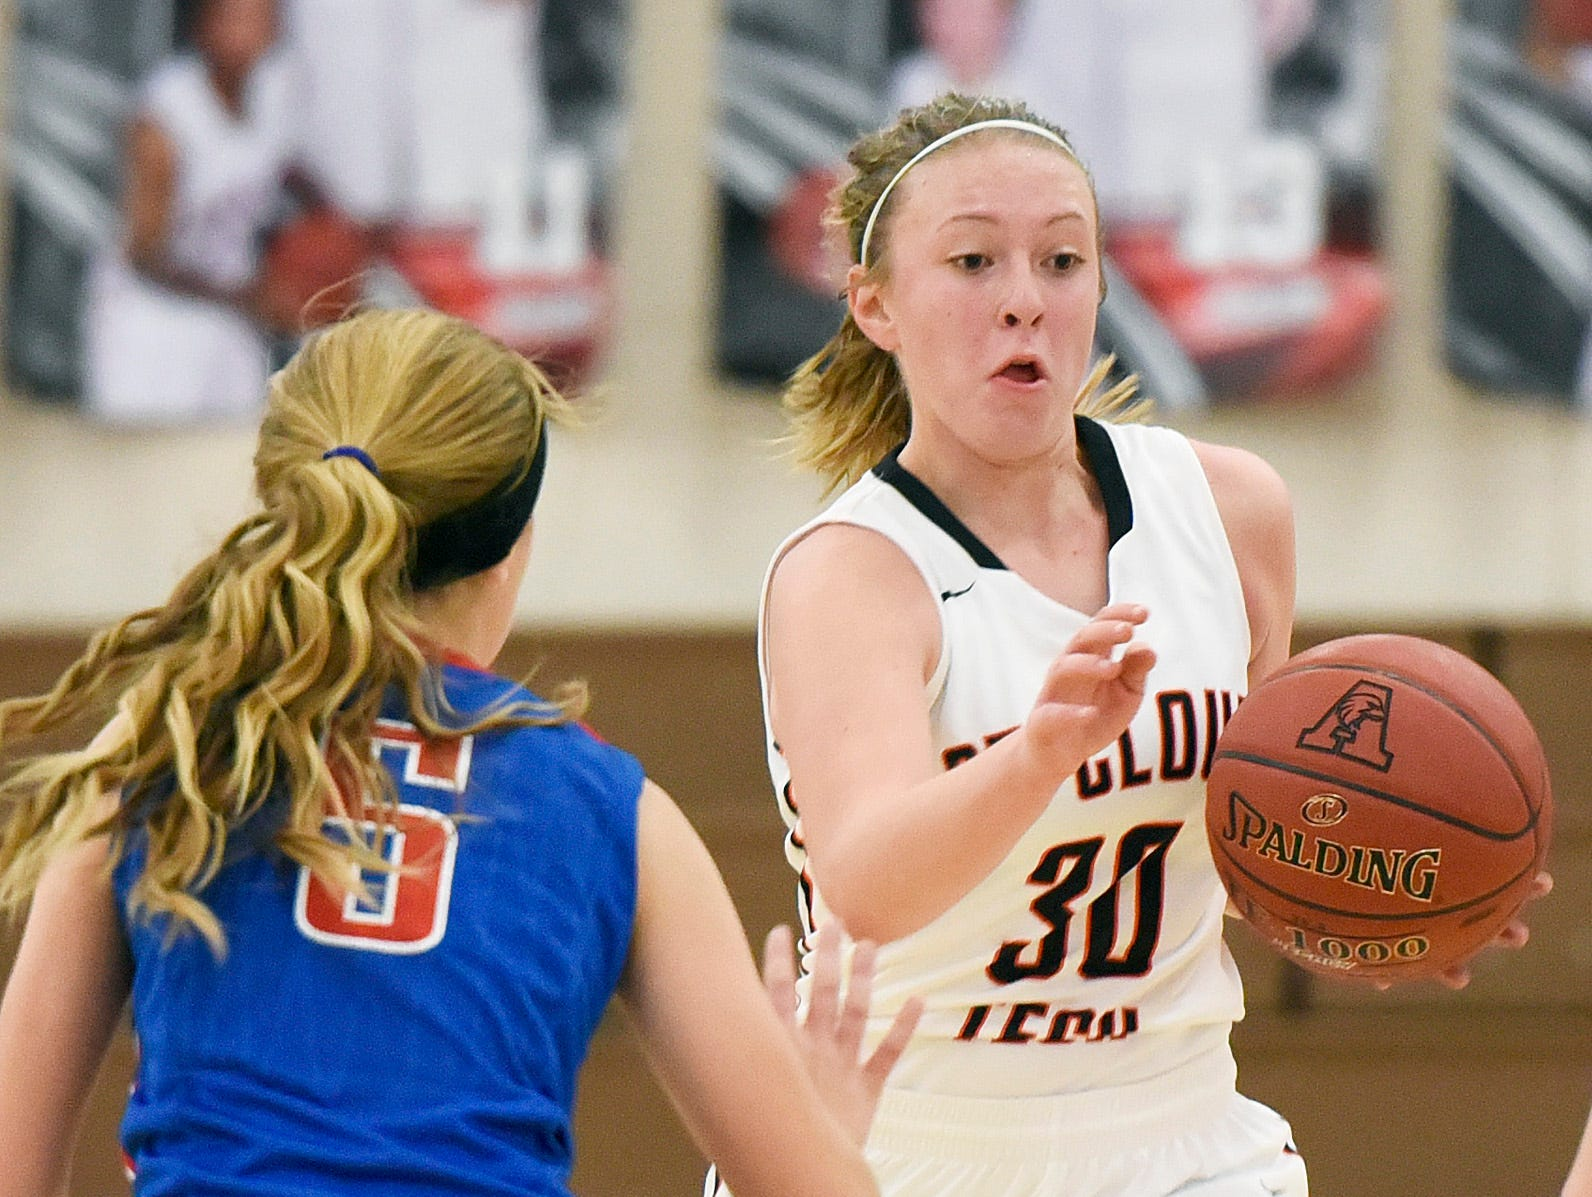 Tech's Abby Wolters breaks past Apollo's Ashley Koepp during the second half Tuesday, Dec. 8 at Apollo High School.